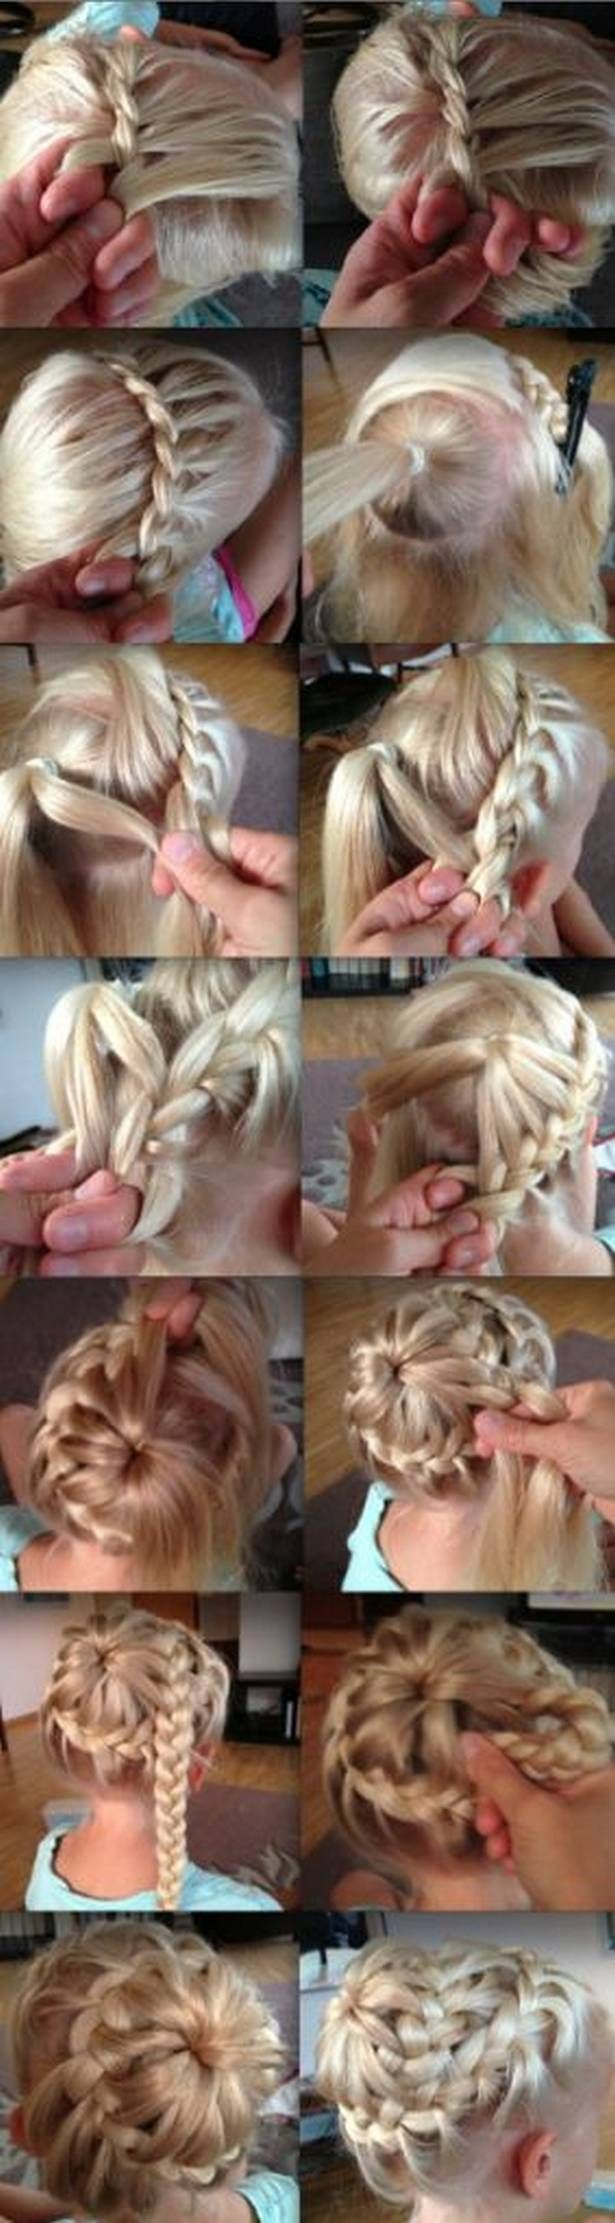 Make Your Hair Look Gorgeous By Following Our Tips And DIY Hair Tricks  would be fun to do Patti's hair when its long again